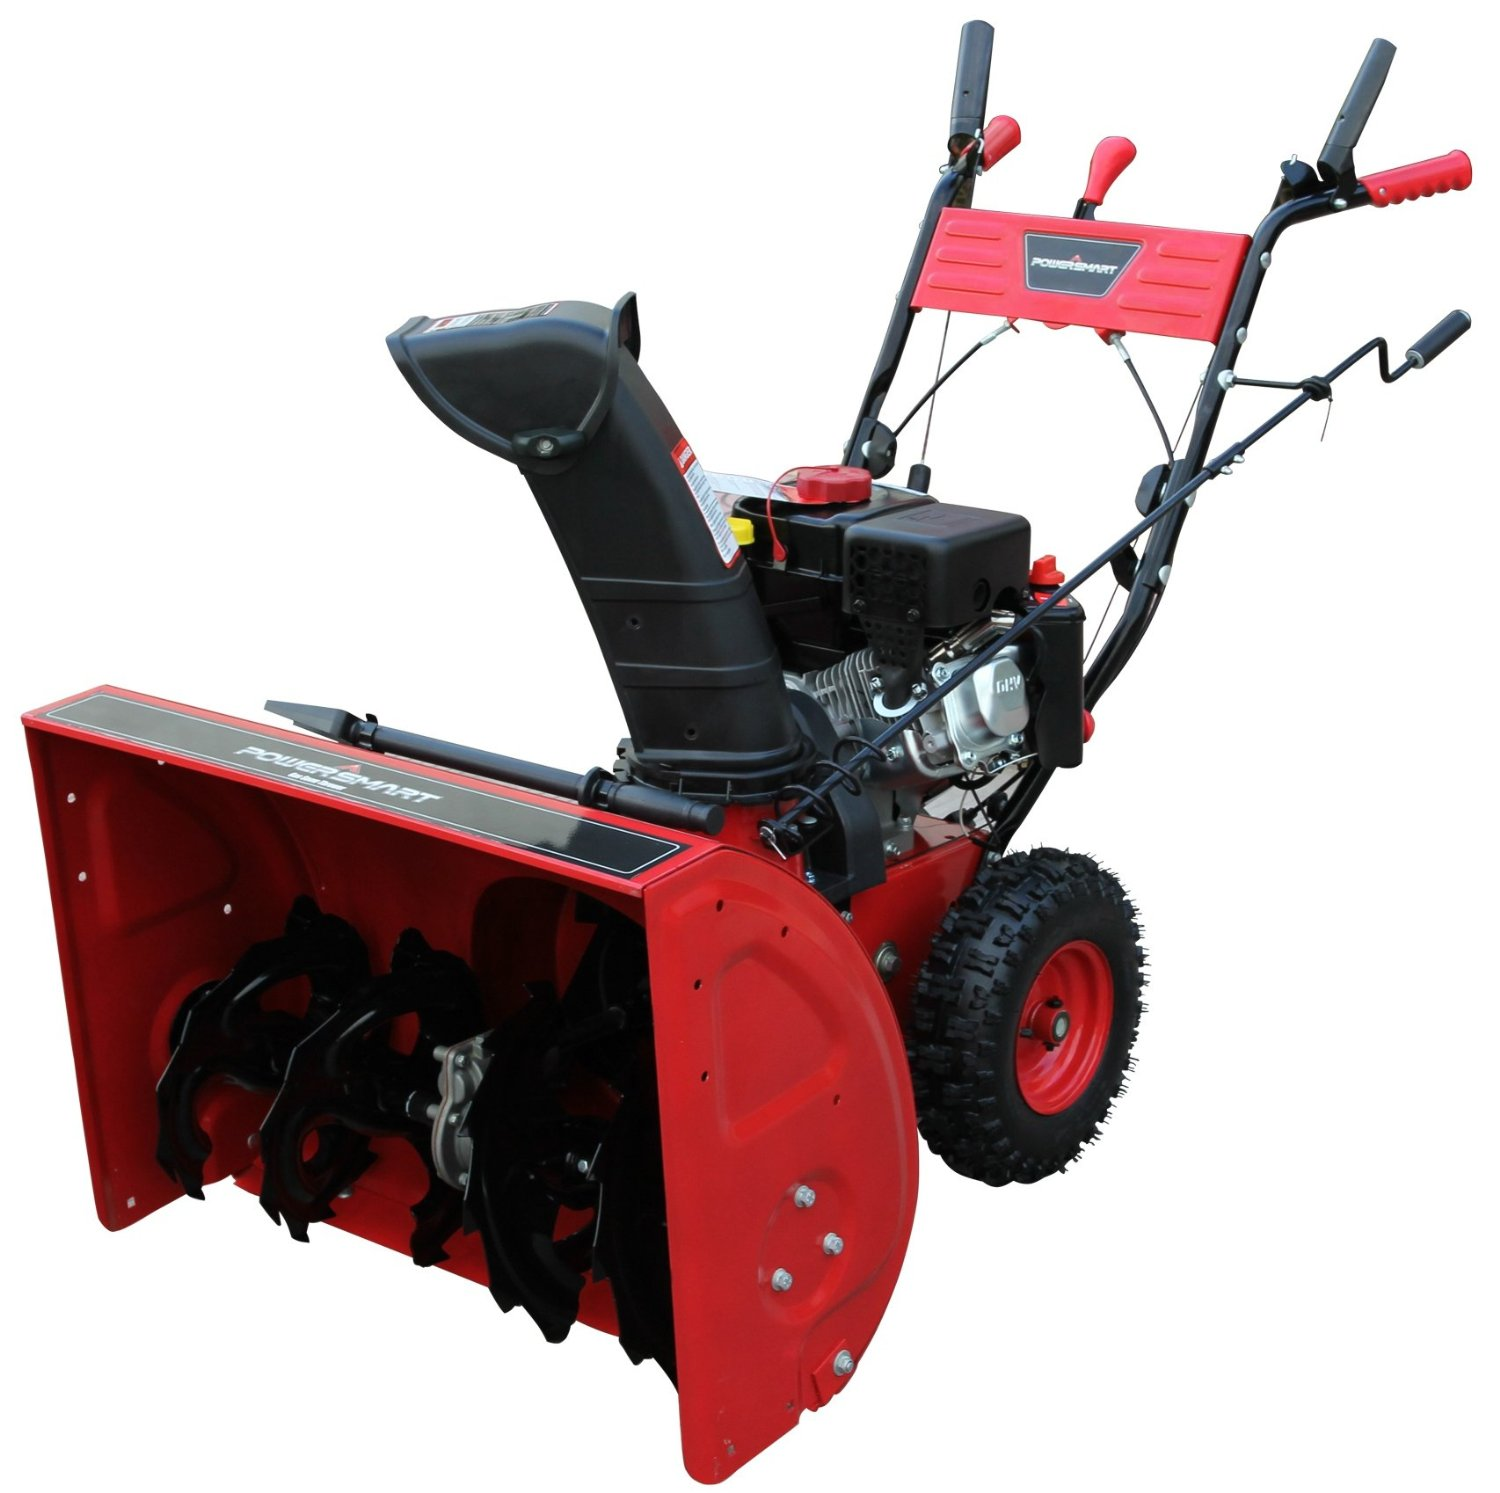 High Powered Blower : Best snow blowers for sale review jerusalem post